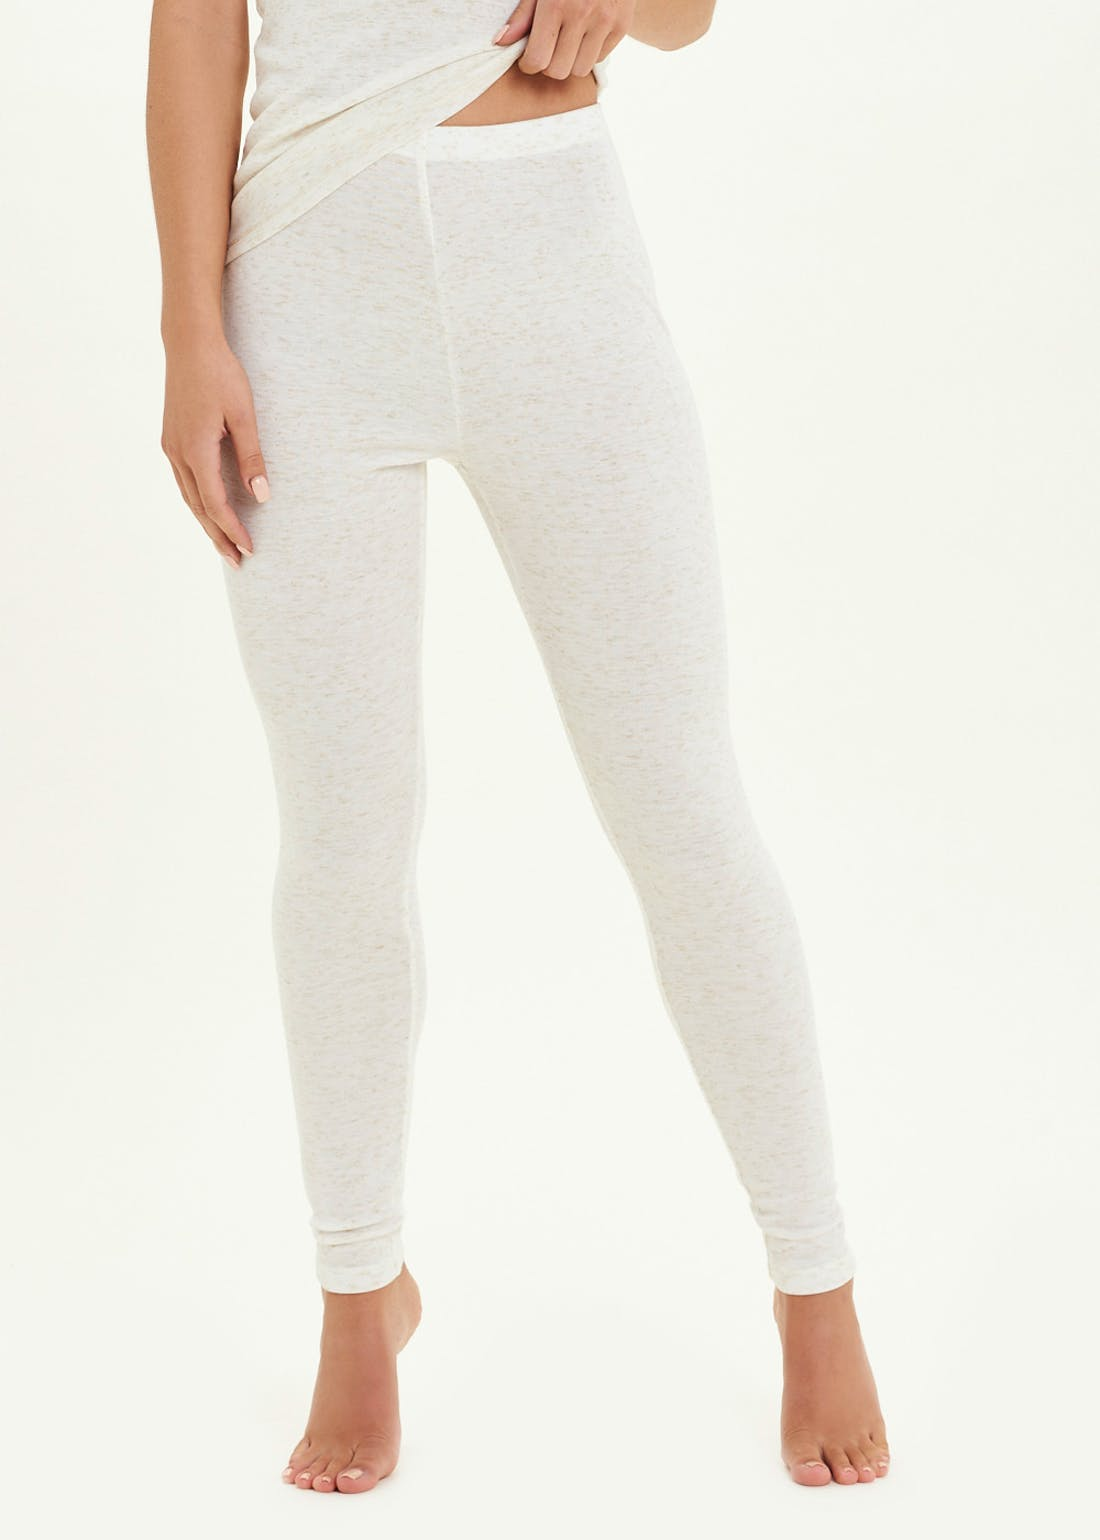 Sparkle Trim Thermal Leggings